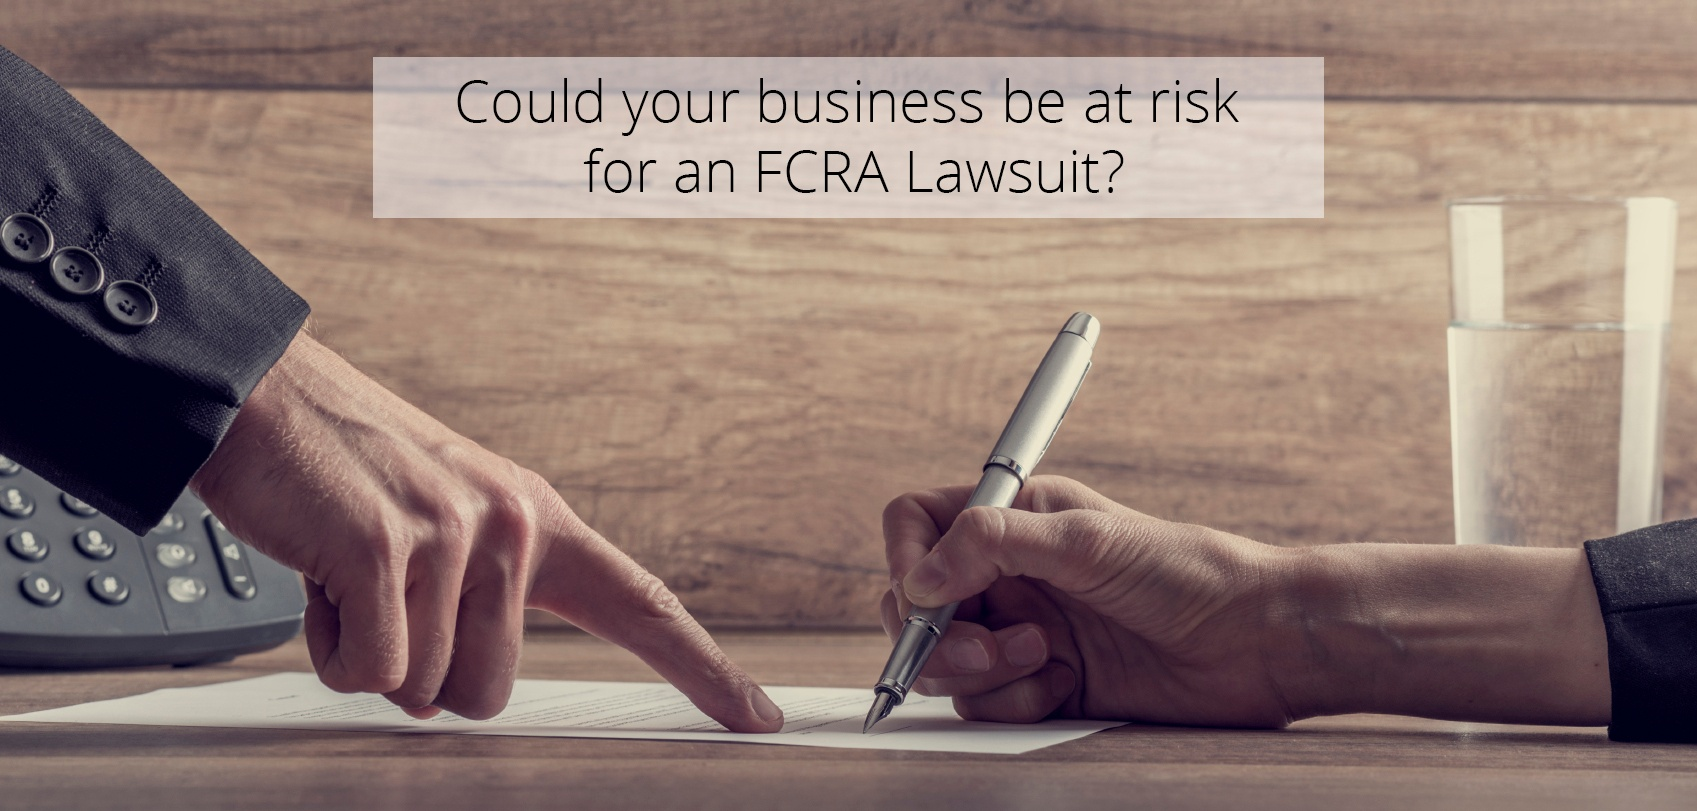 Could_Your_Business_be_at_Risk_of_an_FCRA_Lawsuit.jpg